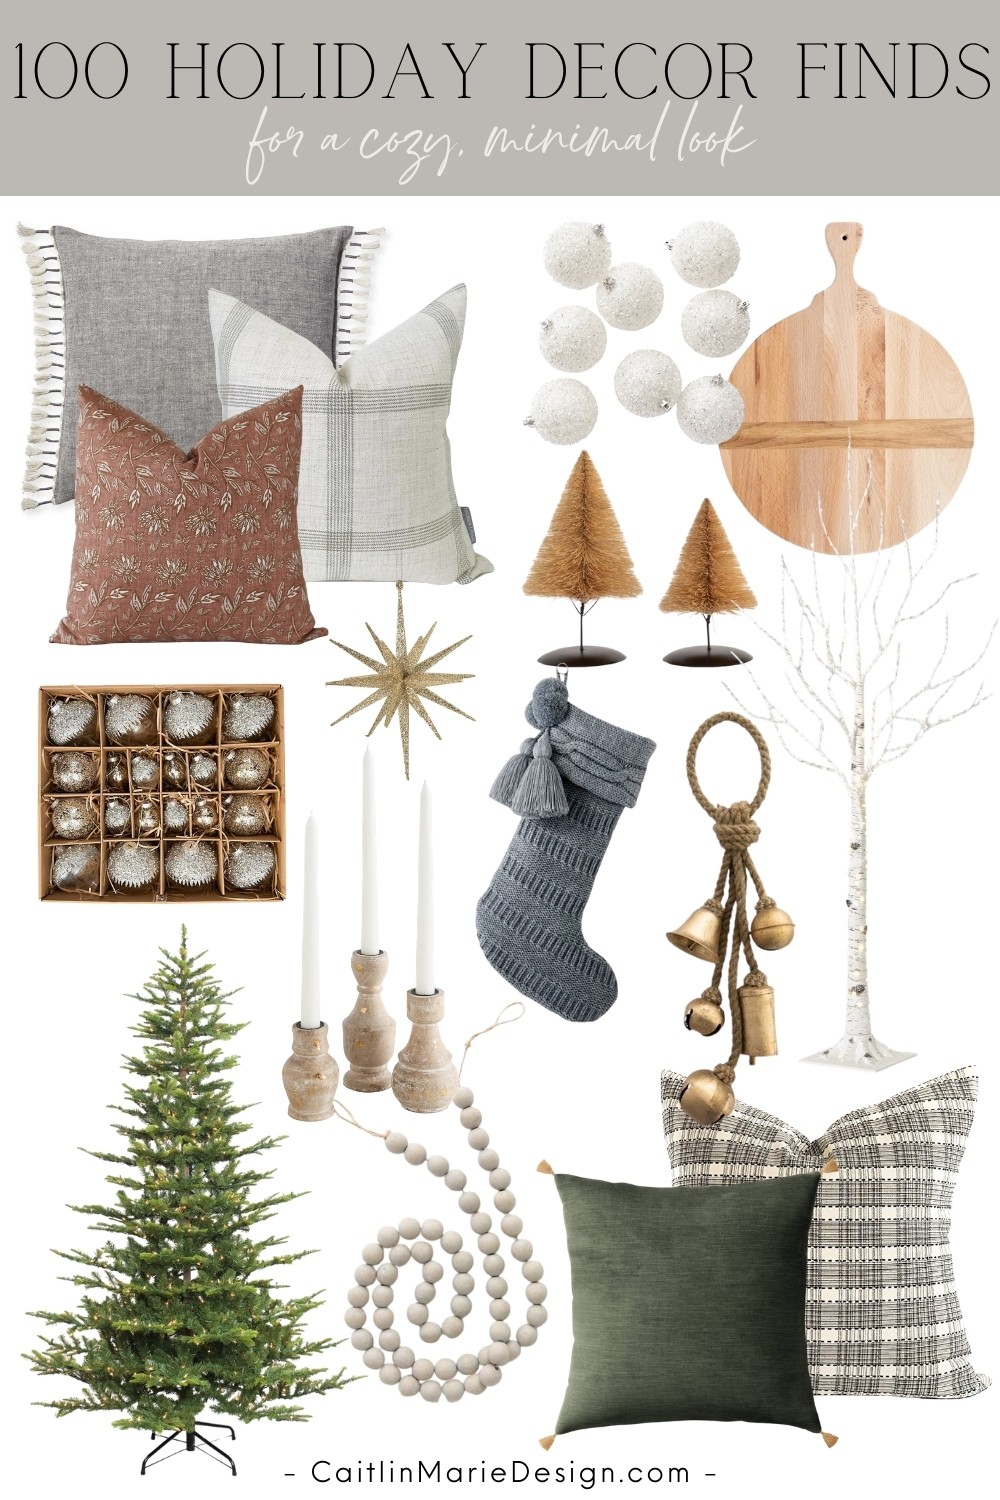 100 Holiday Decor Finds for a Cozy, Minimal Look | minimalist Christmas, wood bead garland, sparse Christmas tree, bottle brush trees, starburst ornament, modern traditional Christmas, coastal Christmas decor